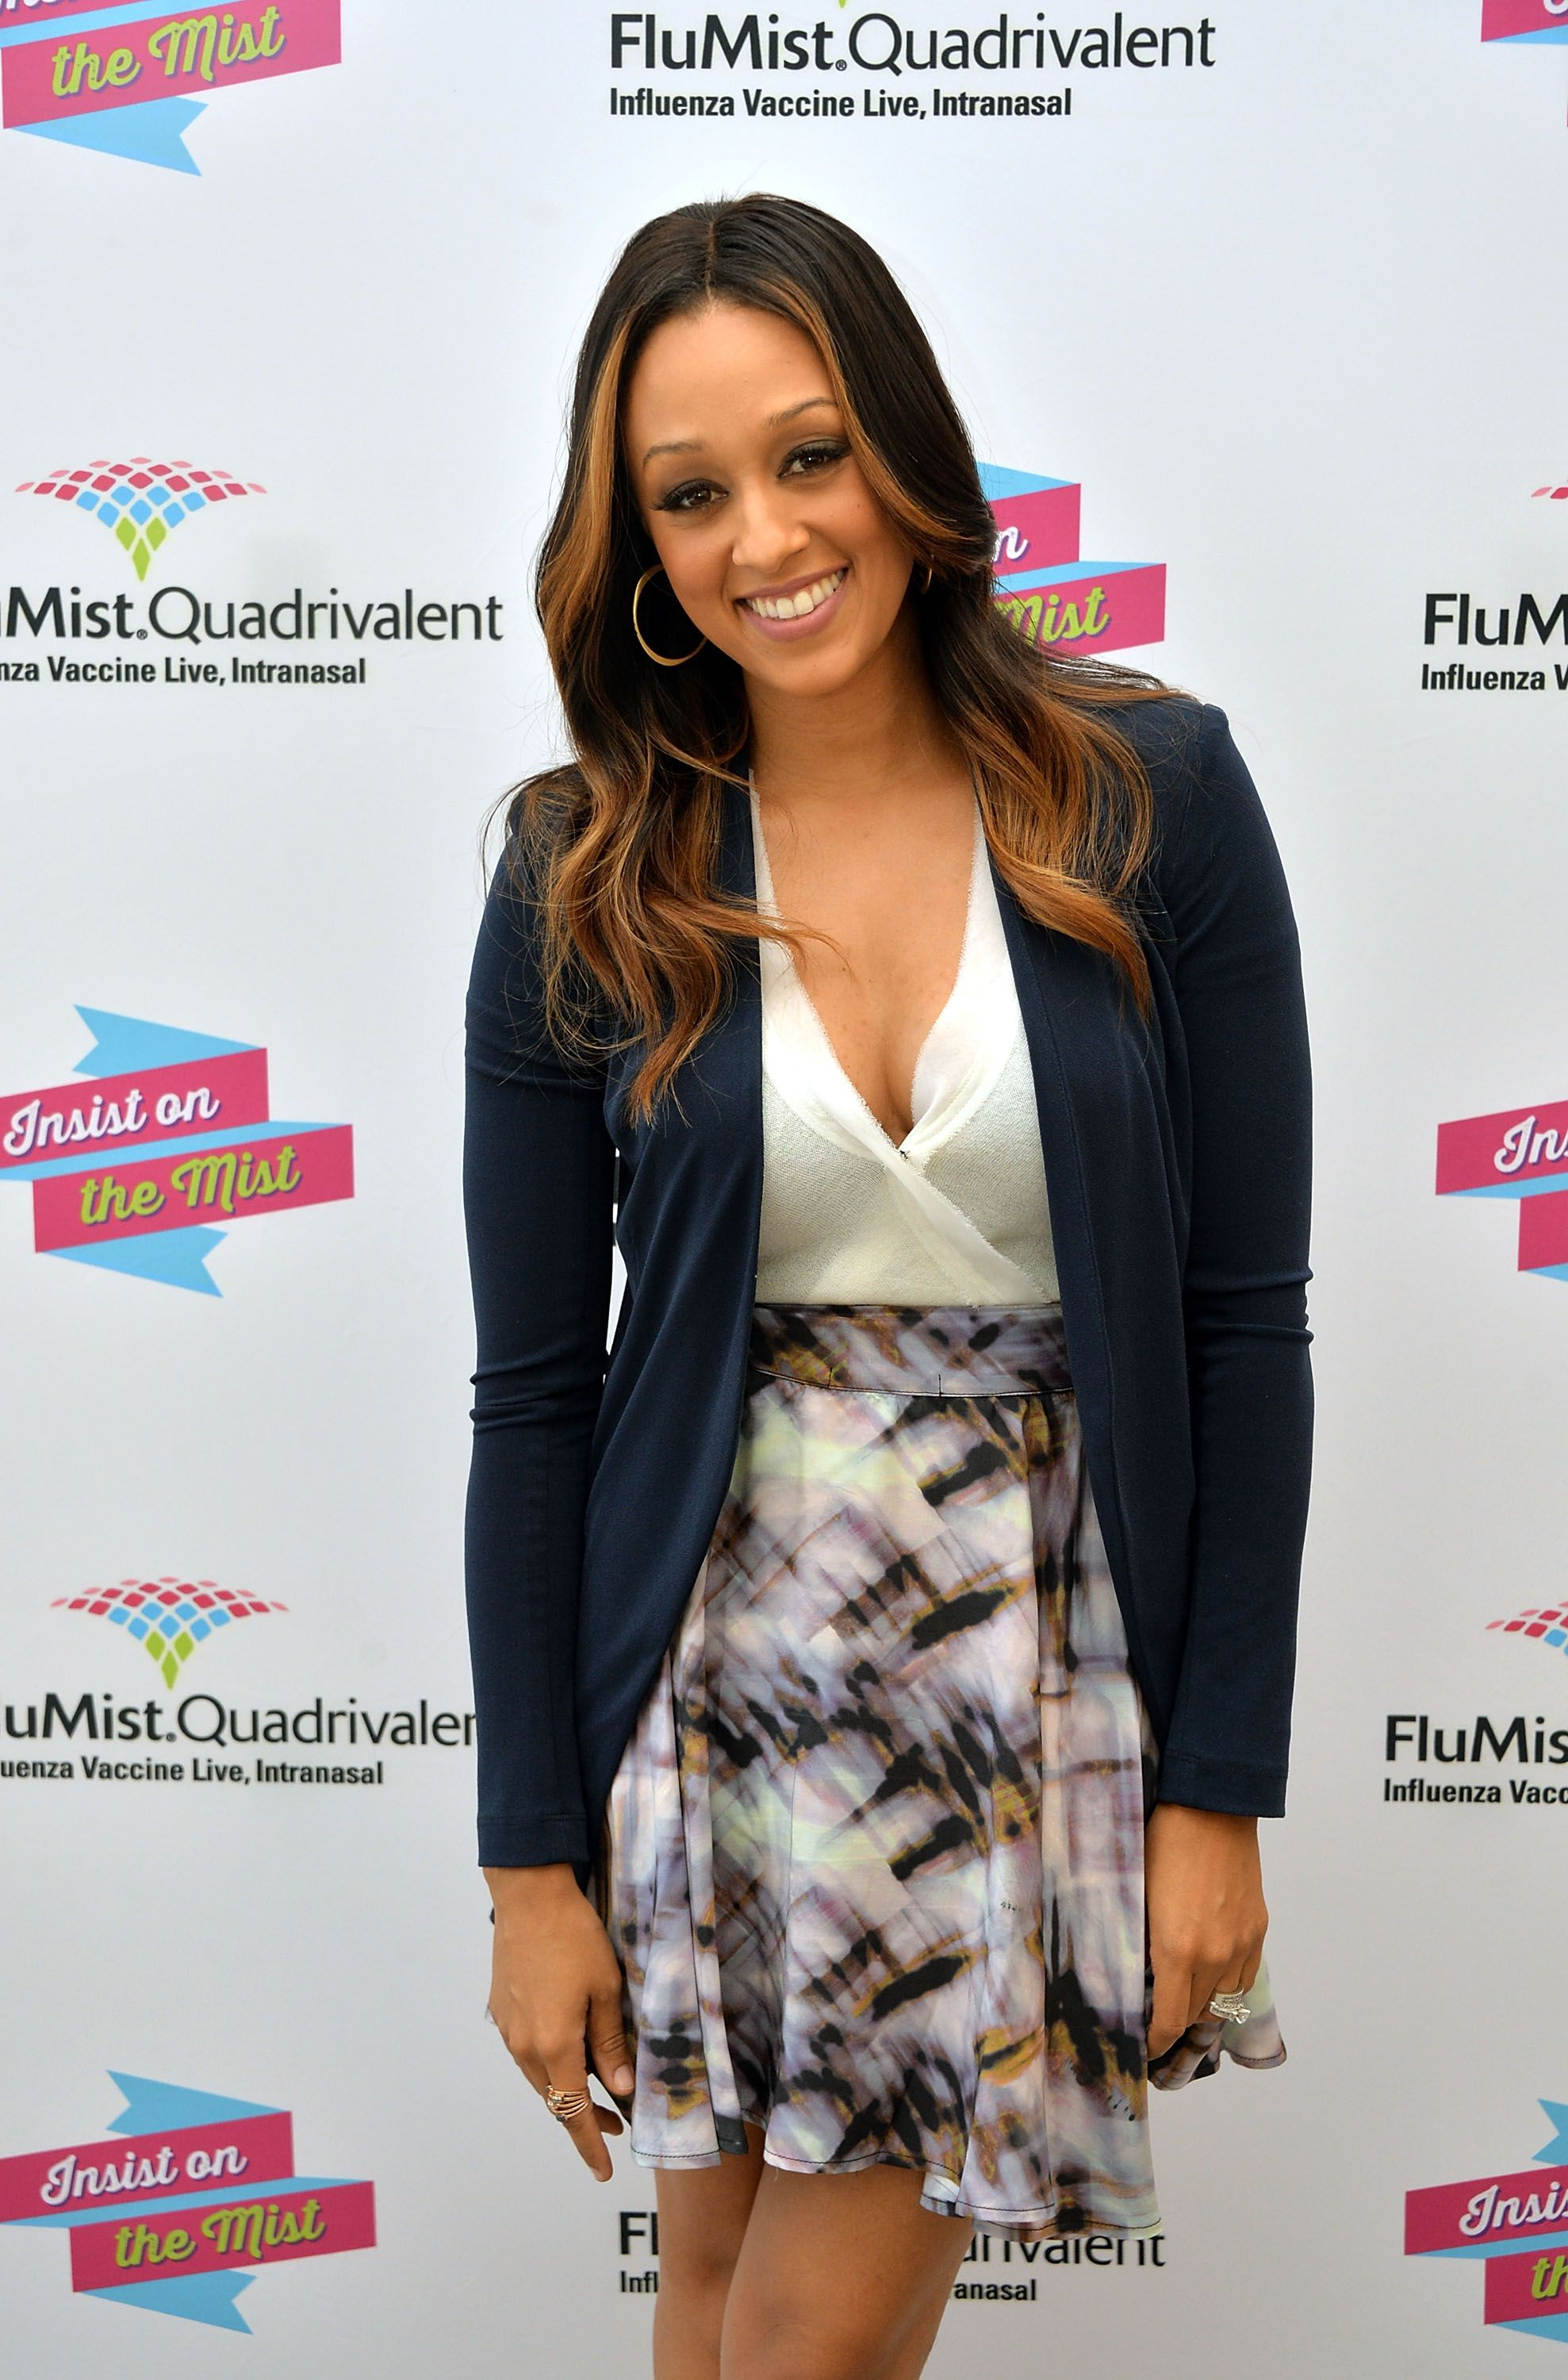 """Tia Mowry at the launch of """"I Insist!""""- a FluMist Quadrivalent on September 23, 2013   Photo: Getty Images"""